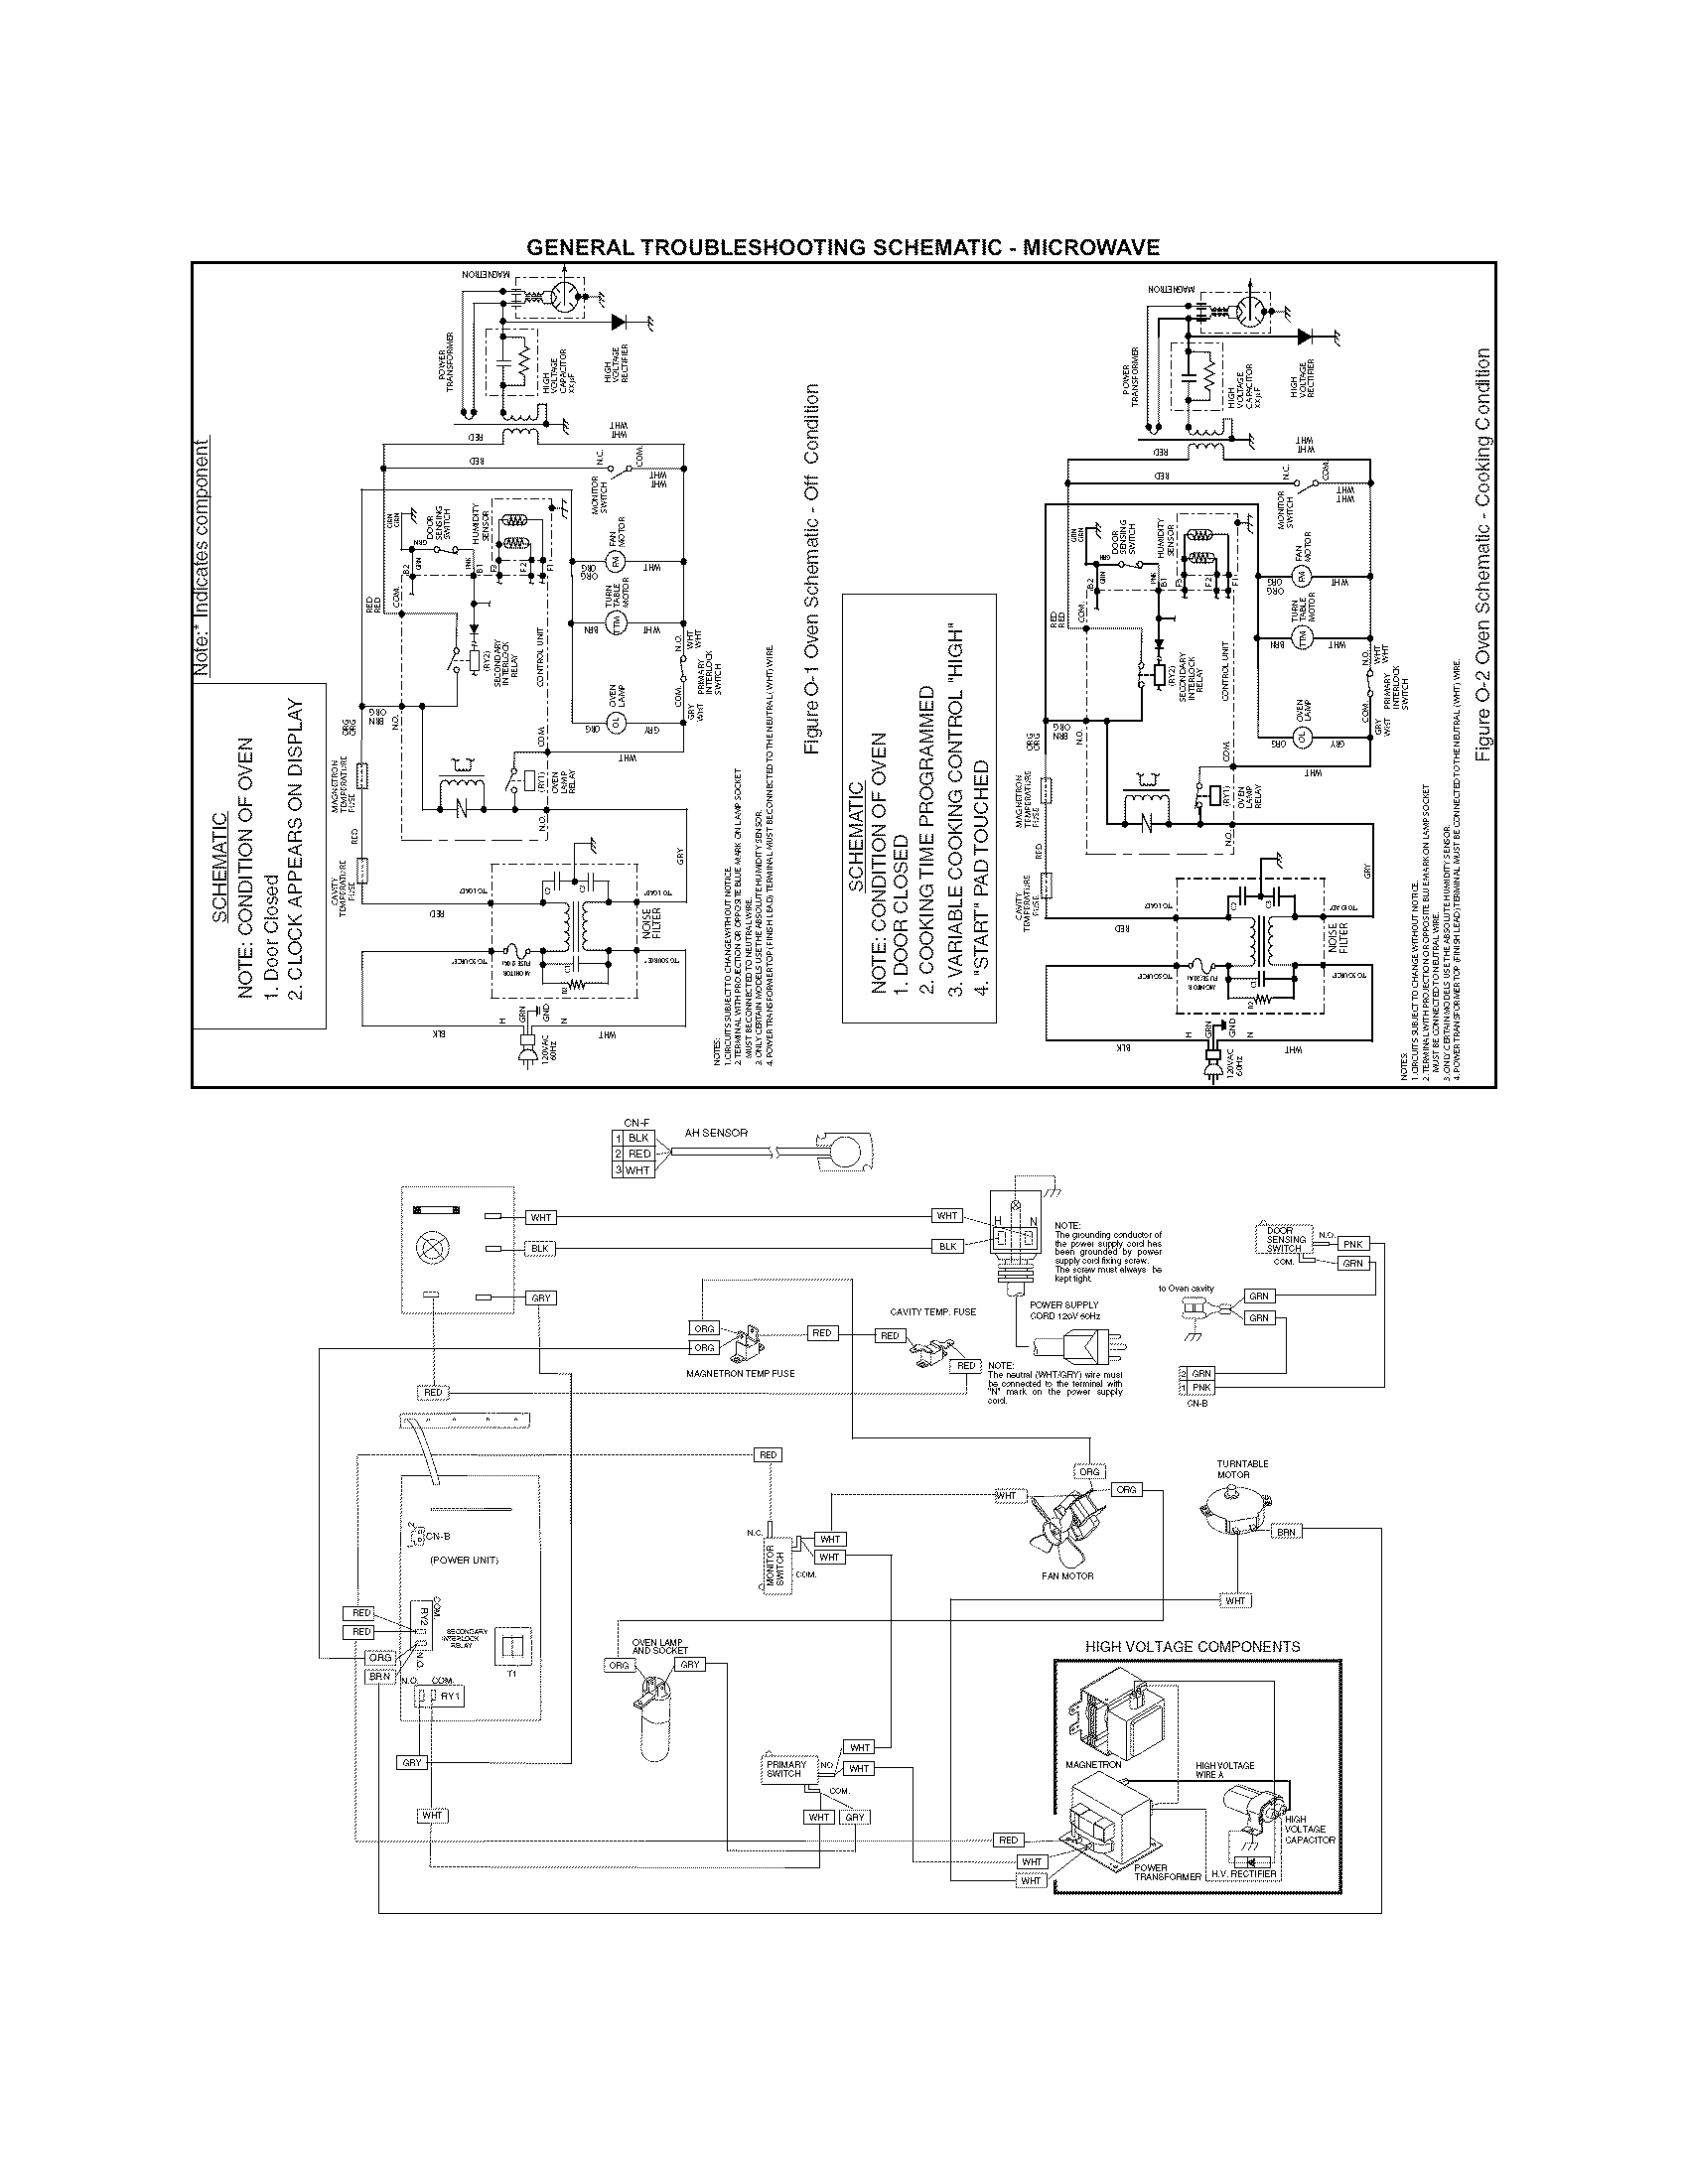 Wiring Diagram For Oven Electric Oven Wiring Diagrams Electric Image